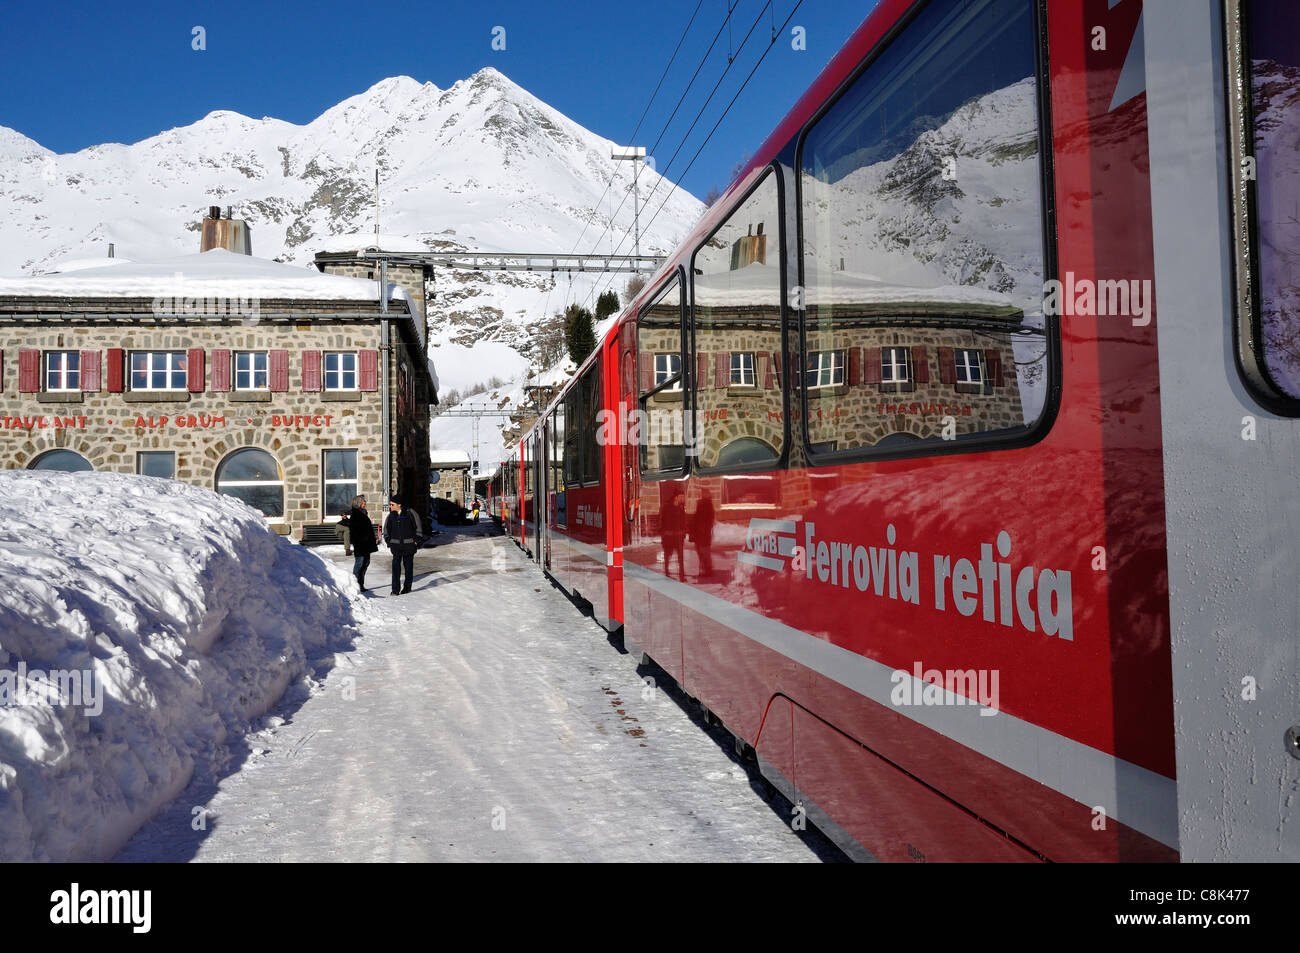 Alp Grüm railway station, Bernina Railway, Pontresina, Engadin, Graubünden, Switzerland - Stock Image